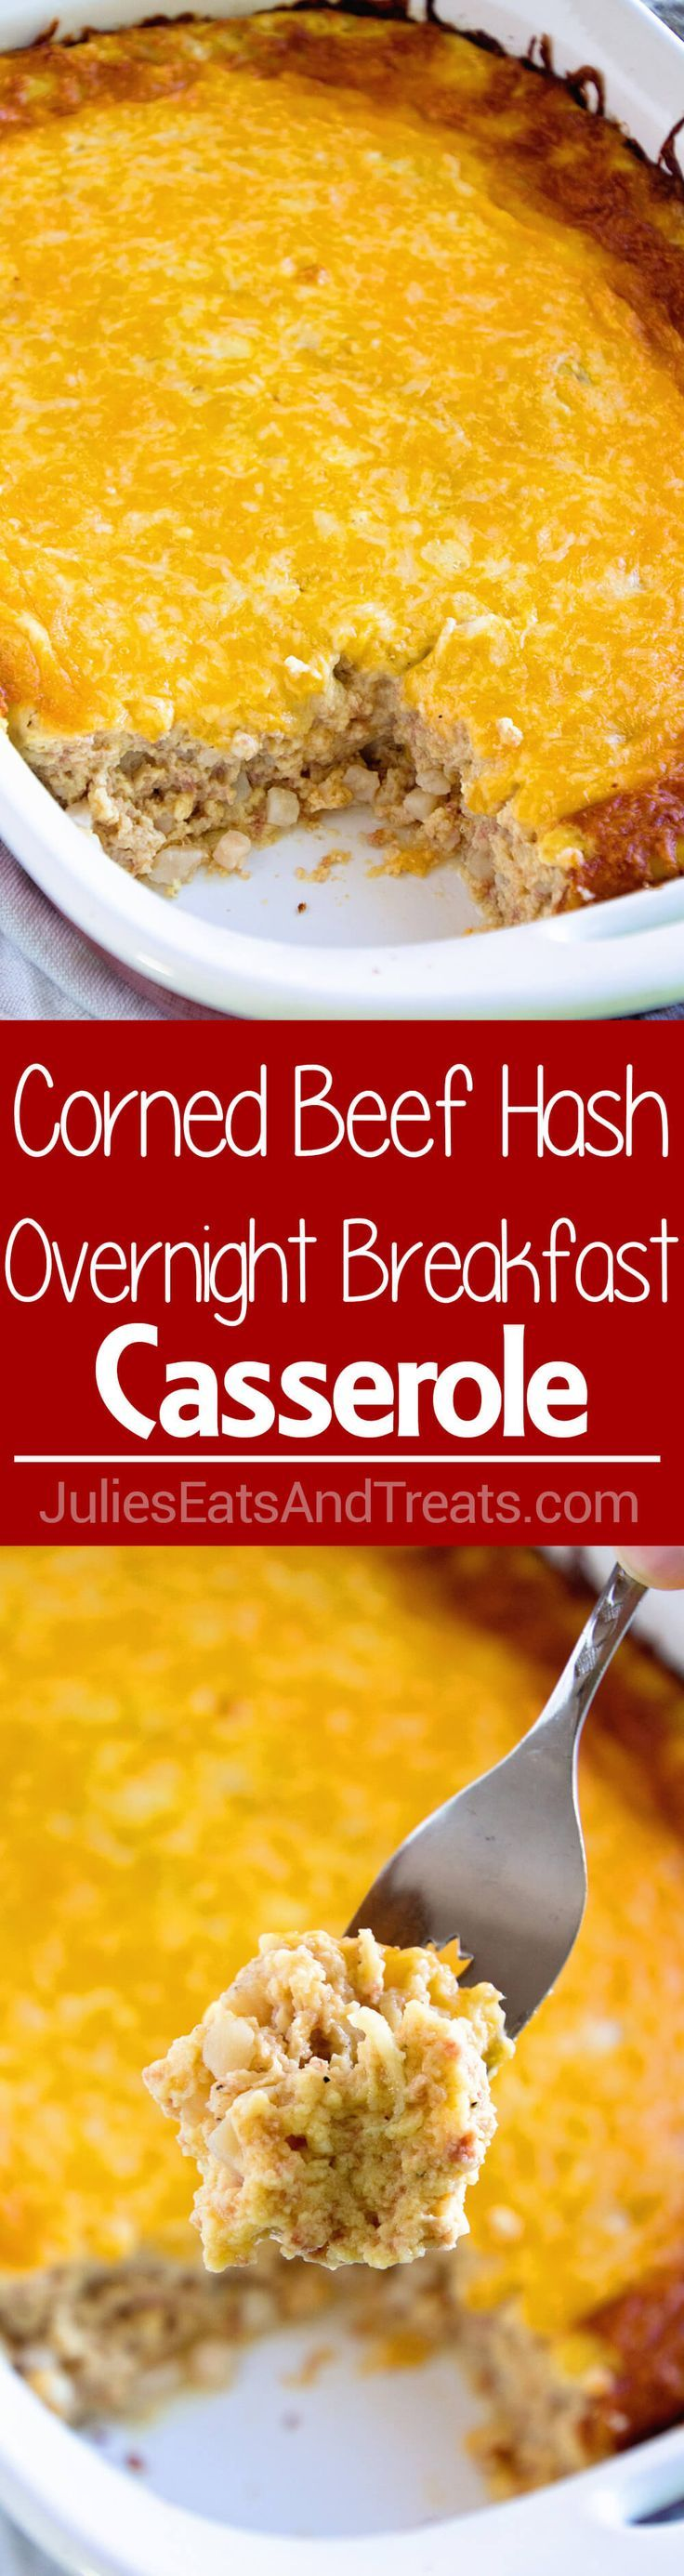 Corned Beef Hash Overnight Breakfast Casserole ~ Delicious, Comforting Overnight…